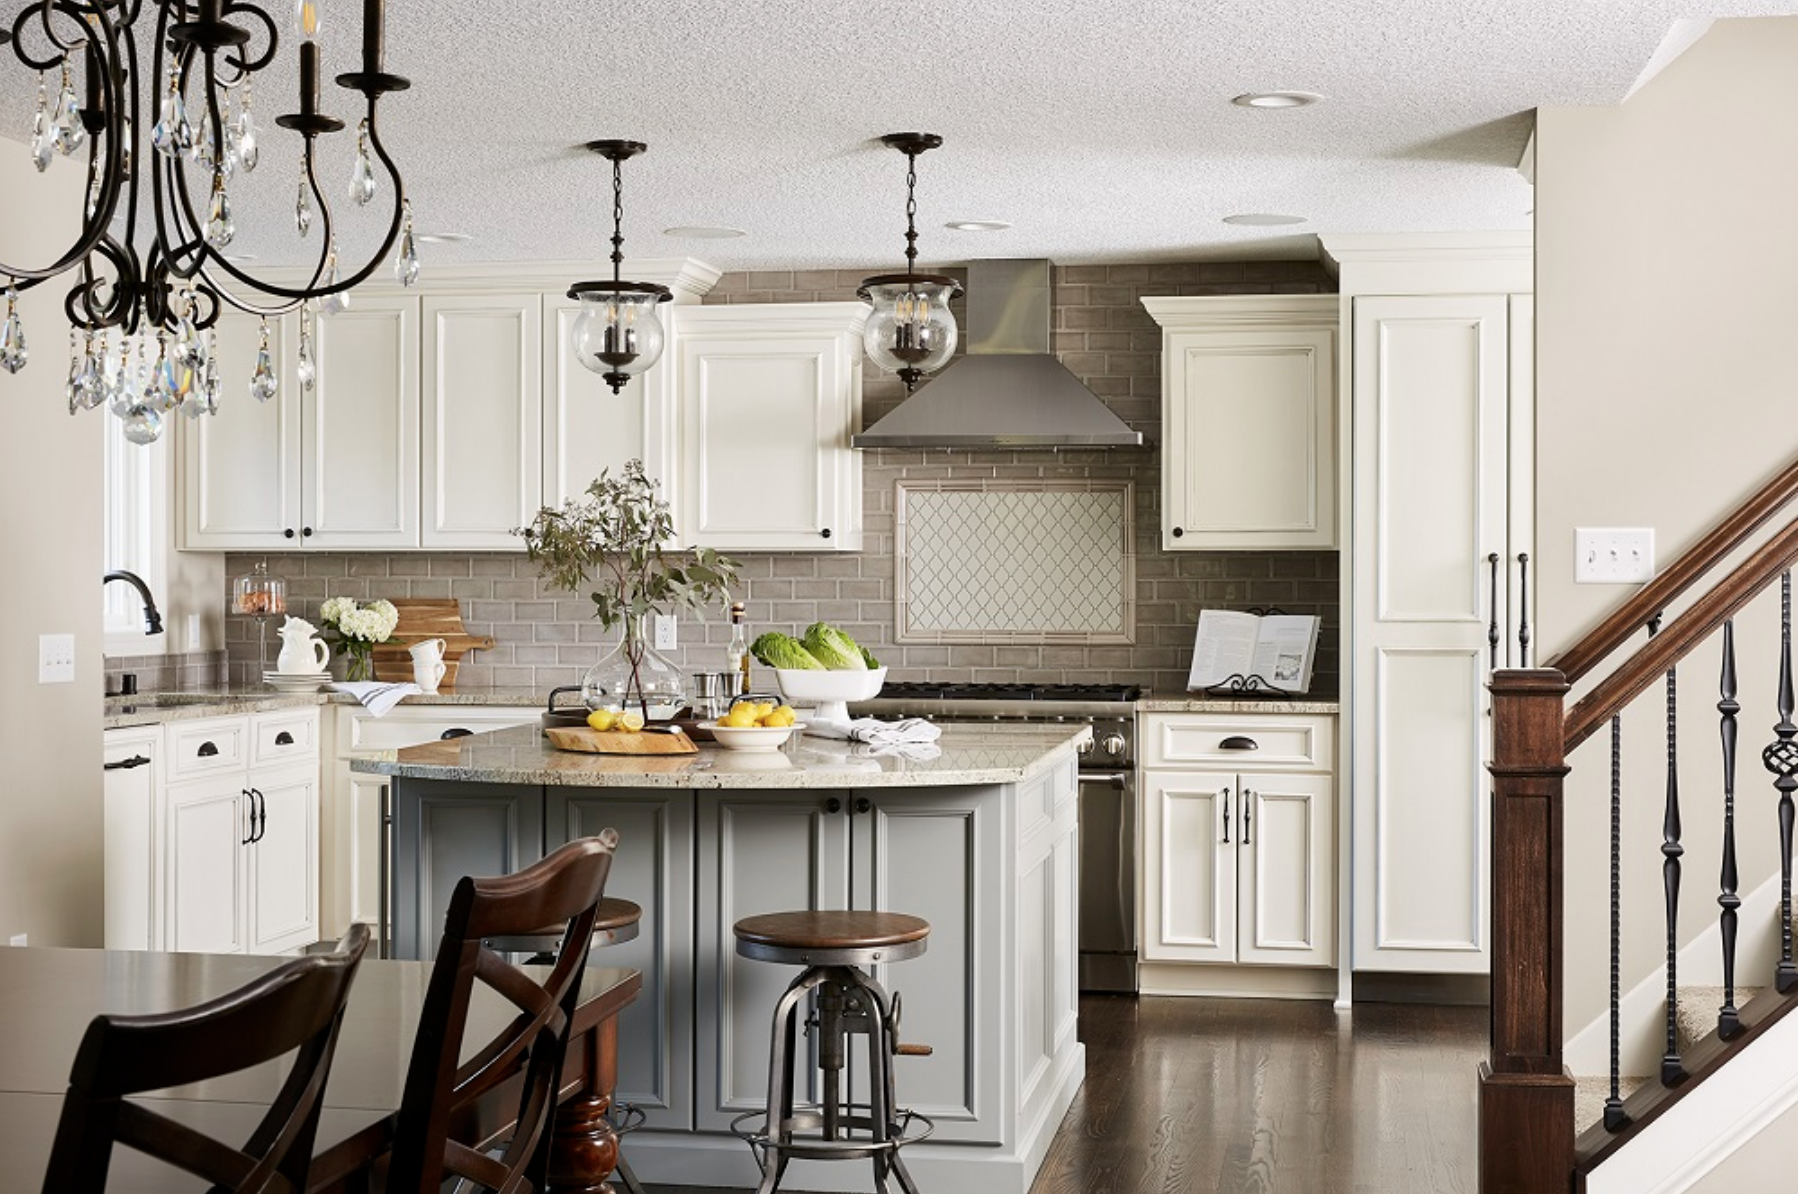 A soft grey kitchen island pulled a touch of coolness into this space, offering contrast to the warm white surrounding cabinets.